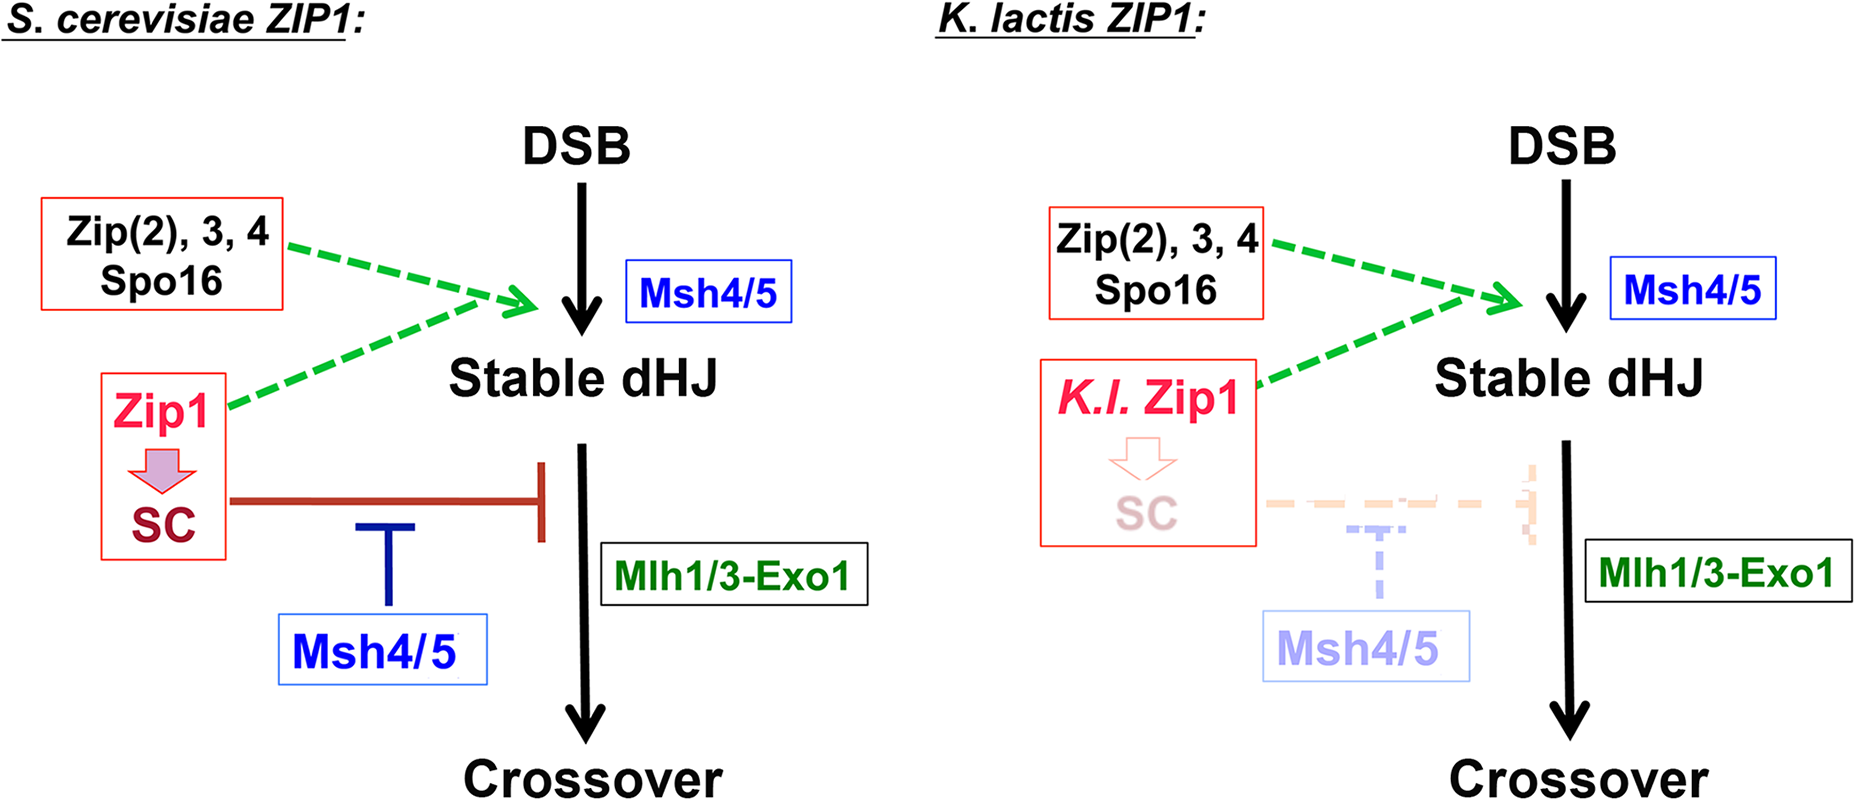 One model to explain the constrained relationship between MutSγ, SIC/Zip1-associated JMs, and MutLγ proteins and how <i>K</i>. <i>l</i>. Zip1 might bypass the constraint.